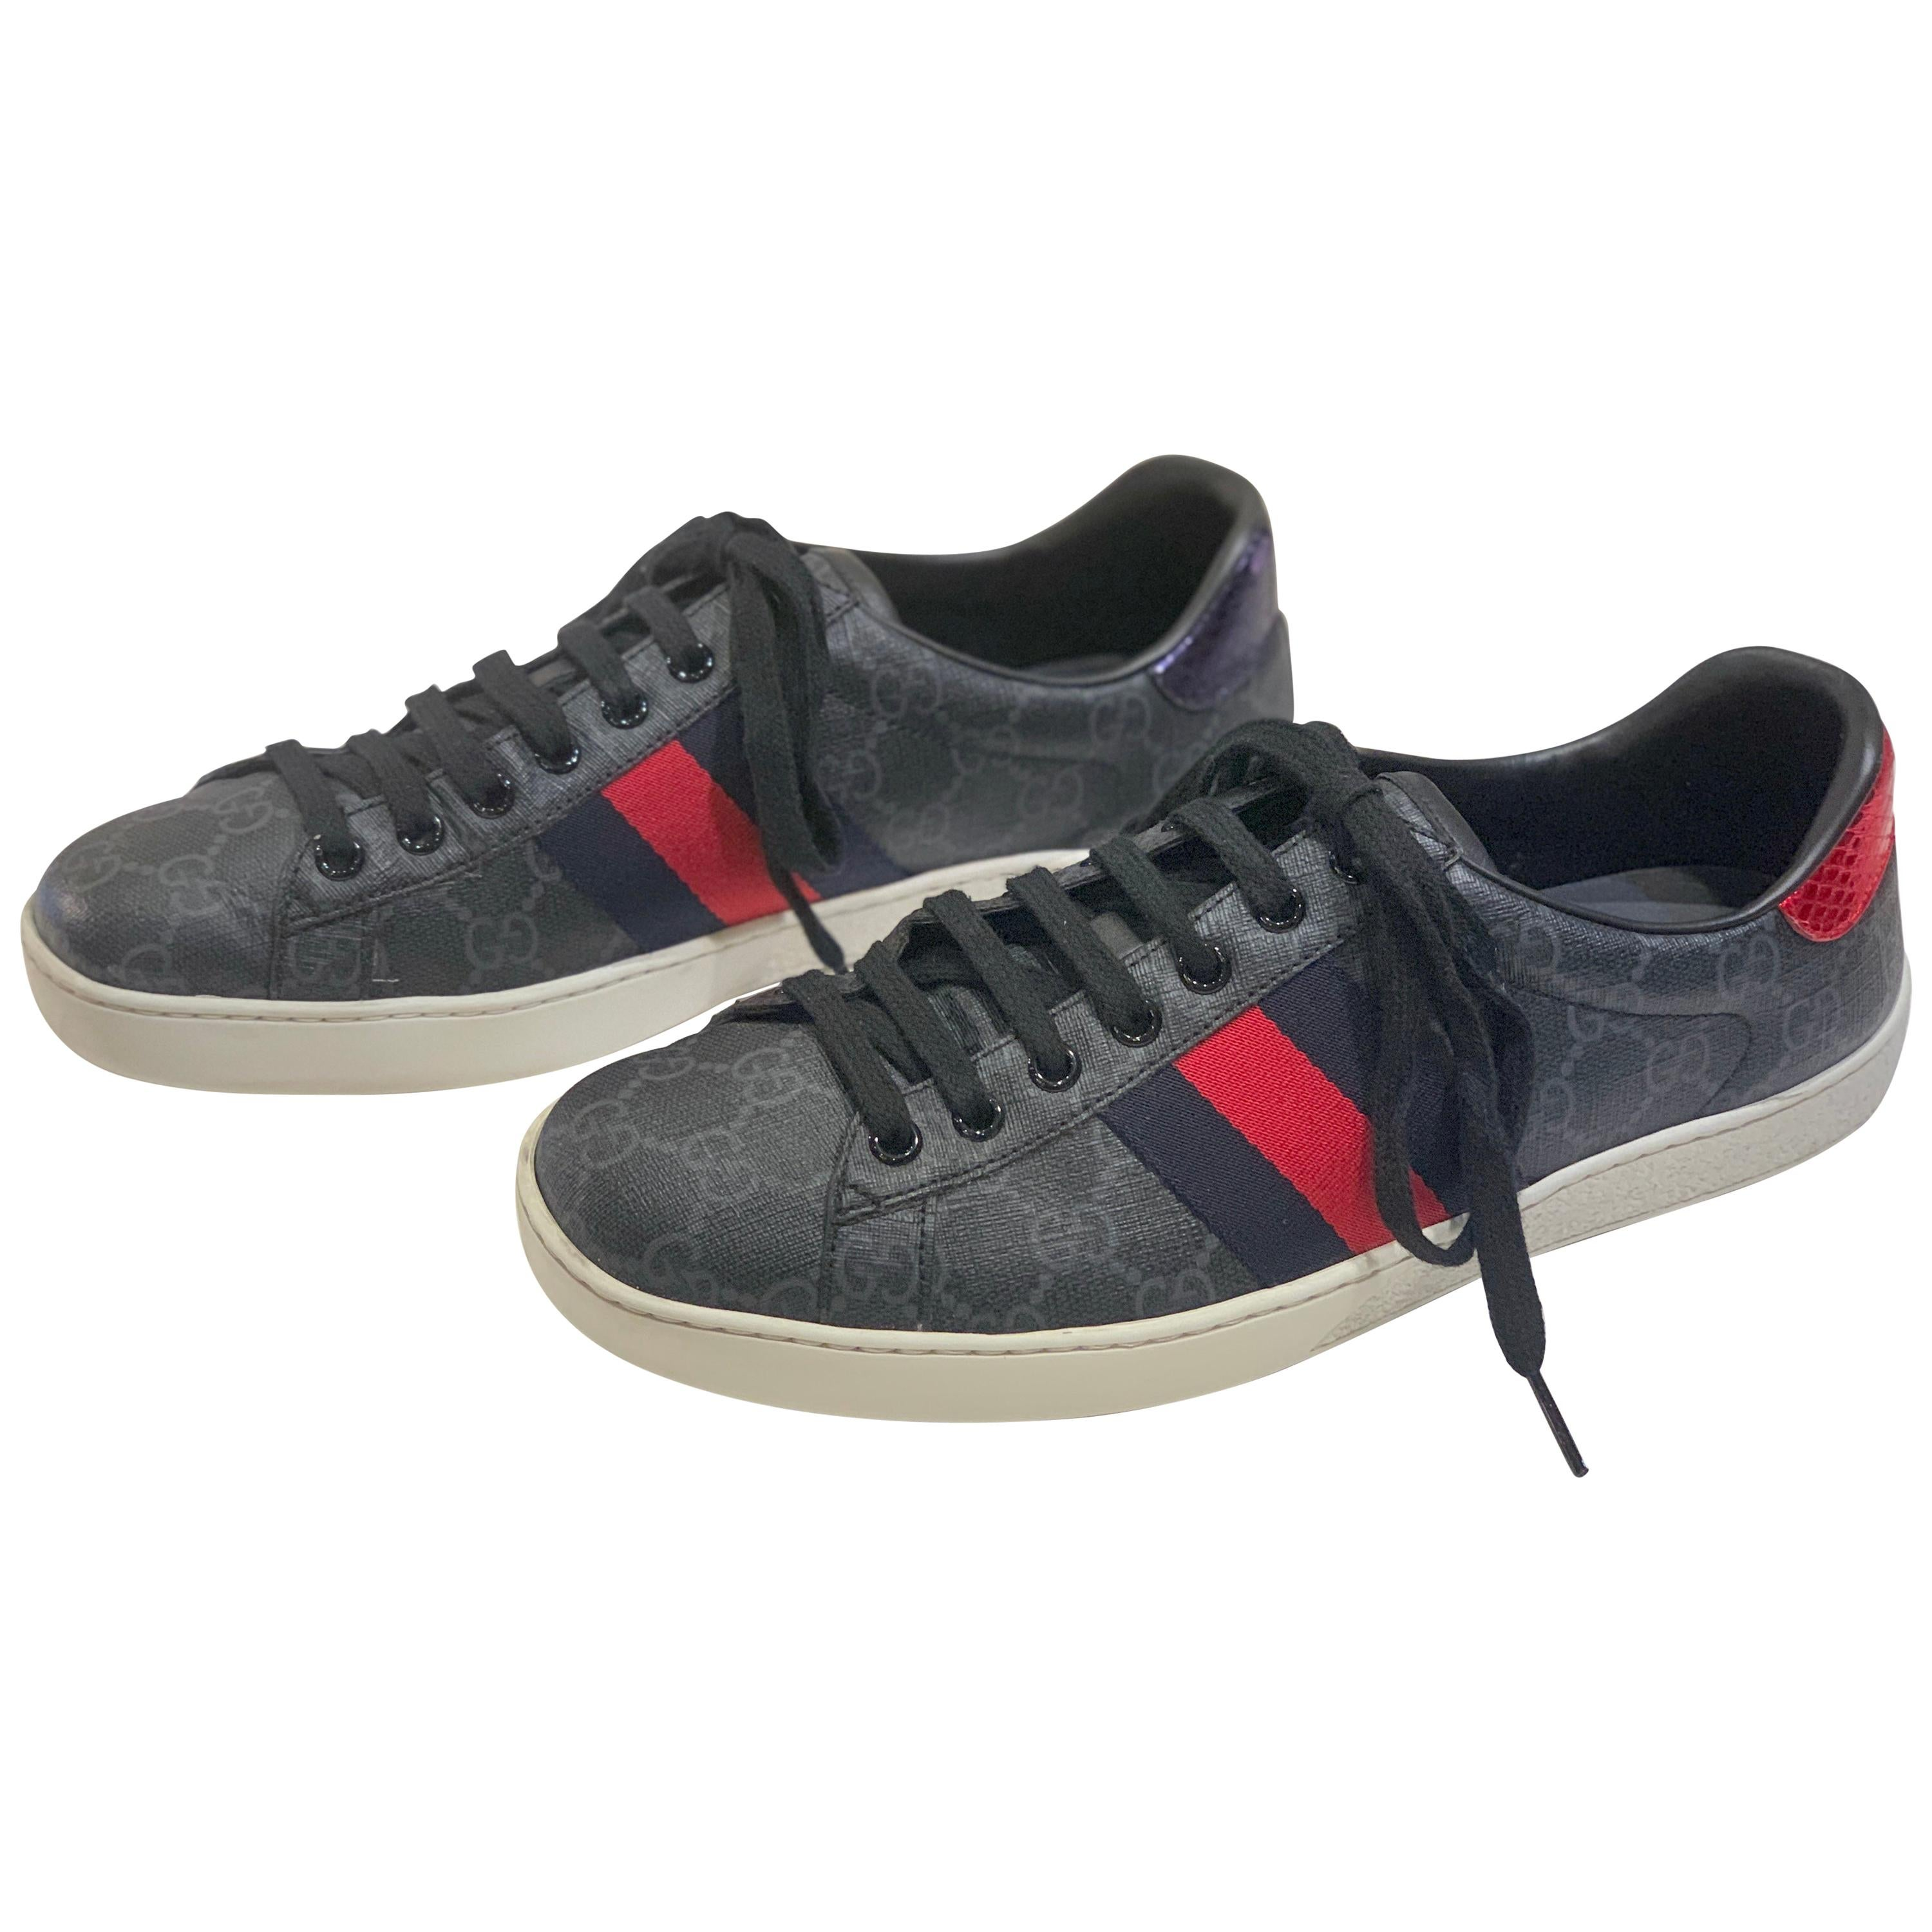 f8c444ead Vintage Gucci Shoes - 345 For Sale at 1stdibs